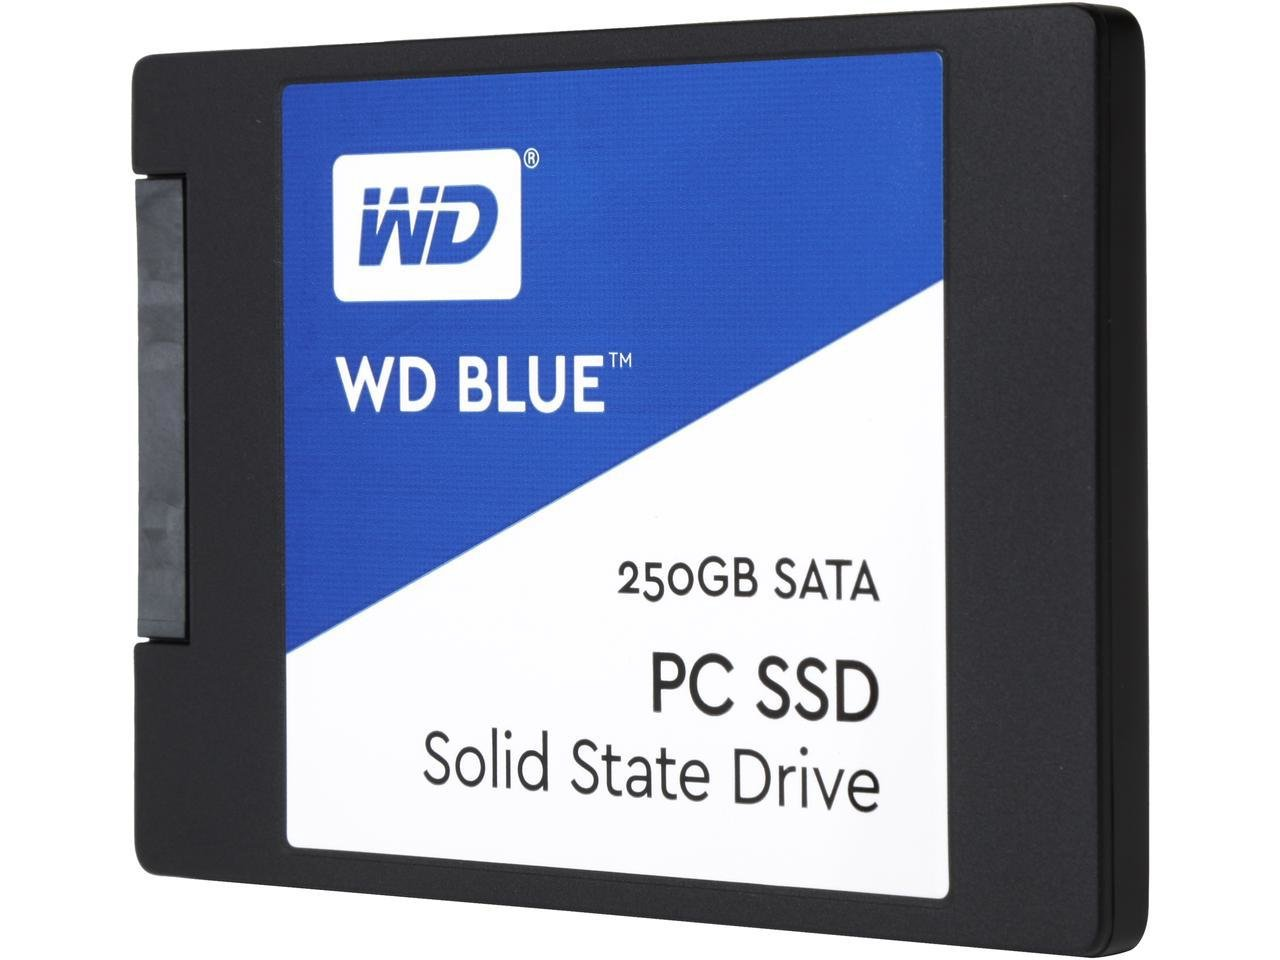 Wd Blue 250gb Internal Solid State Drive Sale 684 Hardisk 25 120gb Toshiba Hitachi Add Review For